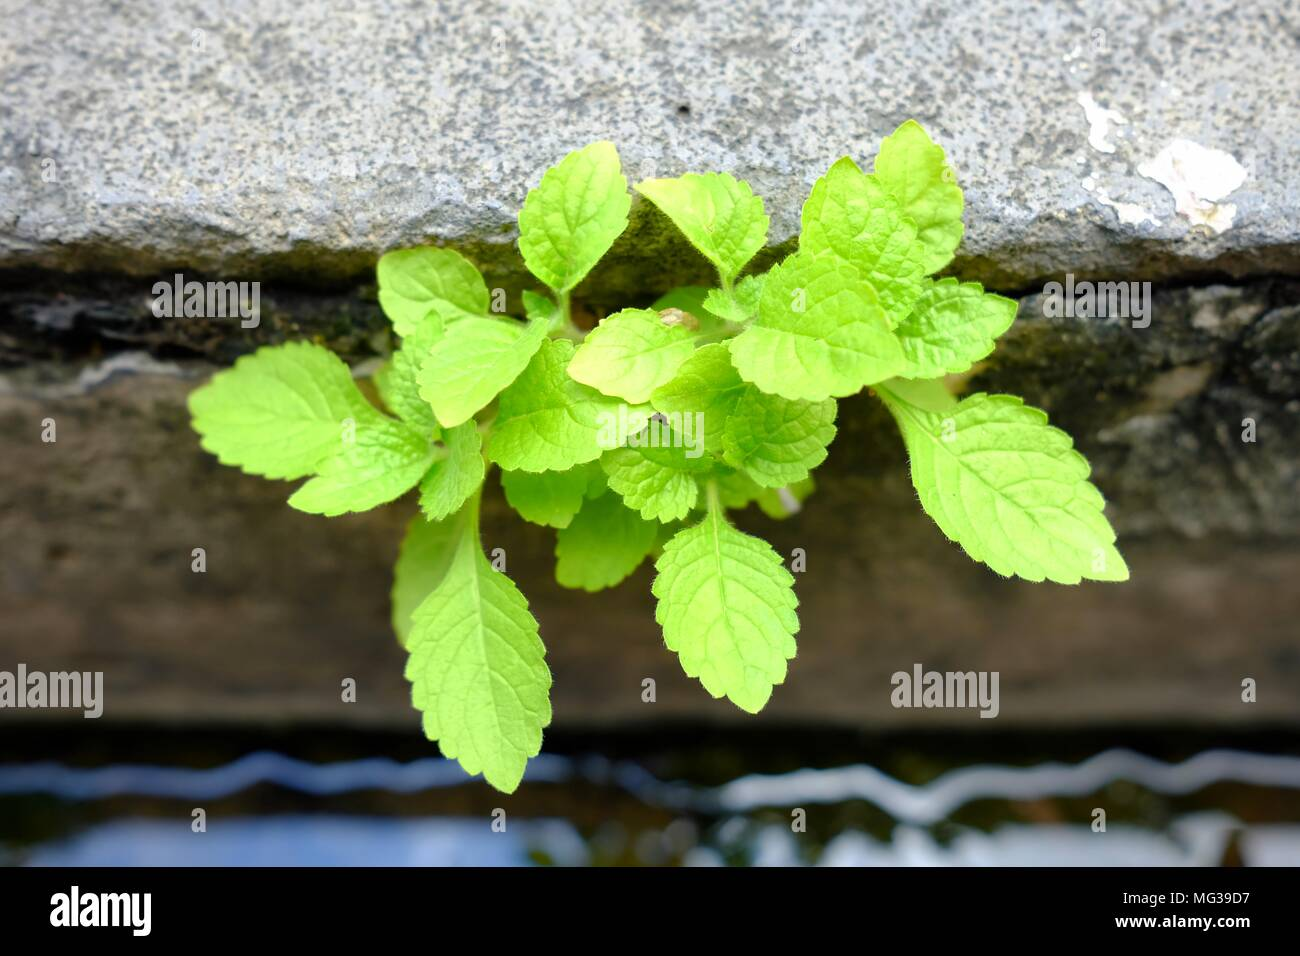 Green Plant Growing in Drain. Stock Photo